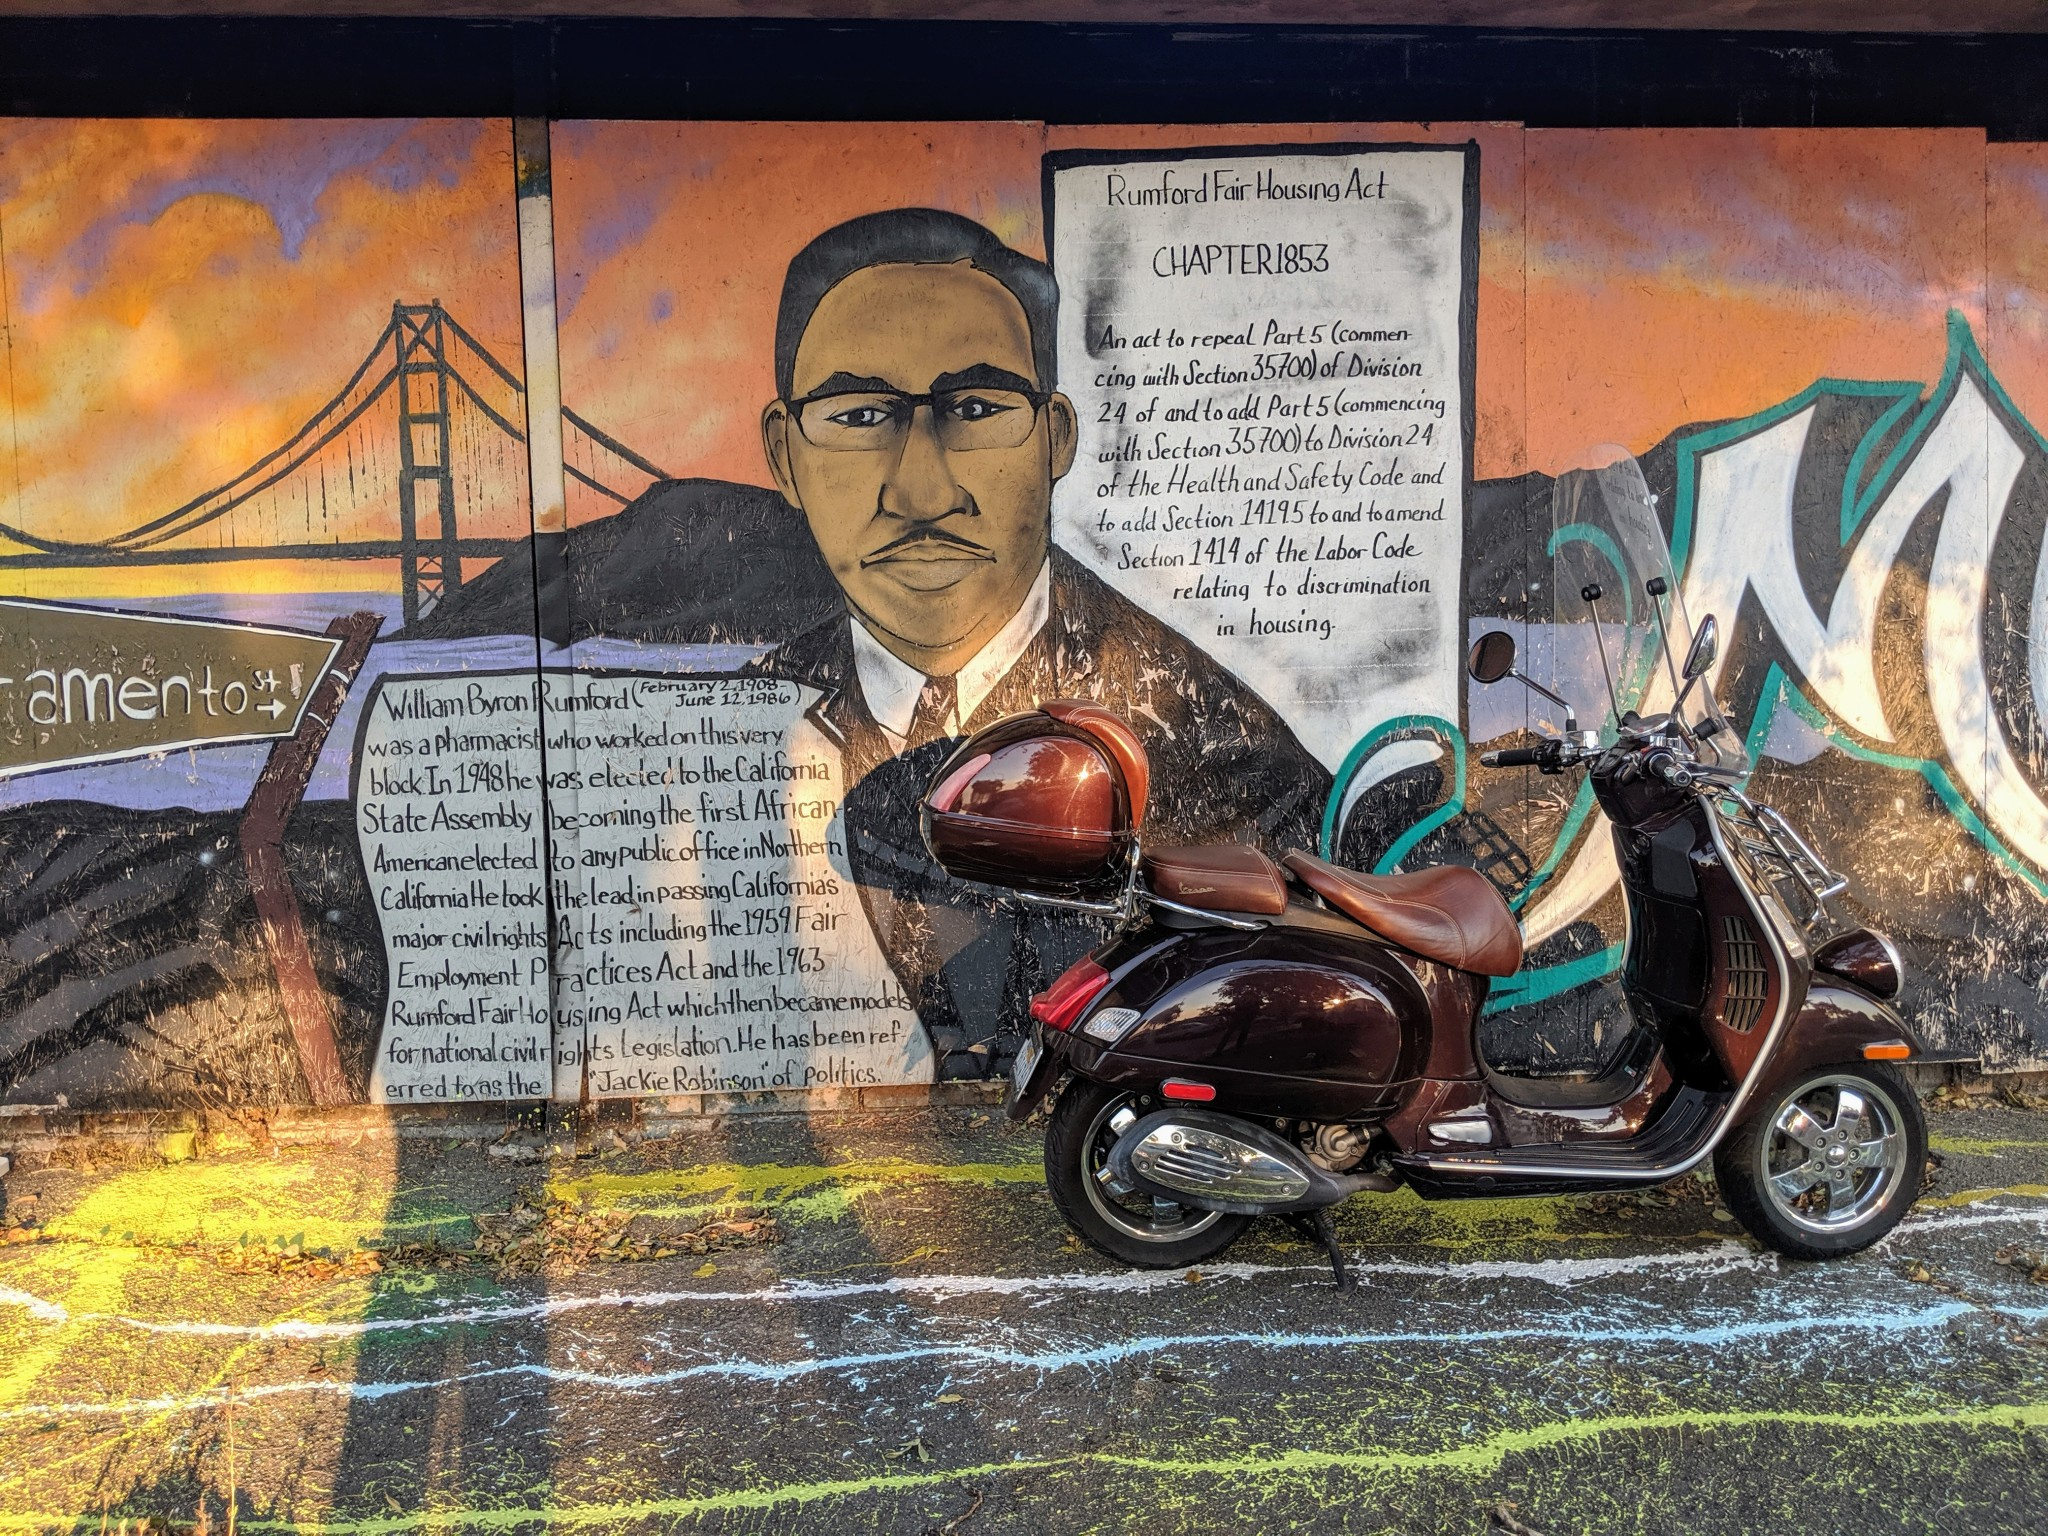 Sacramento Street, Berkeley: mural dedicated to William Byron Rumford ( 1908-1986).